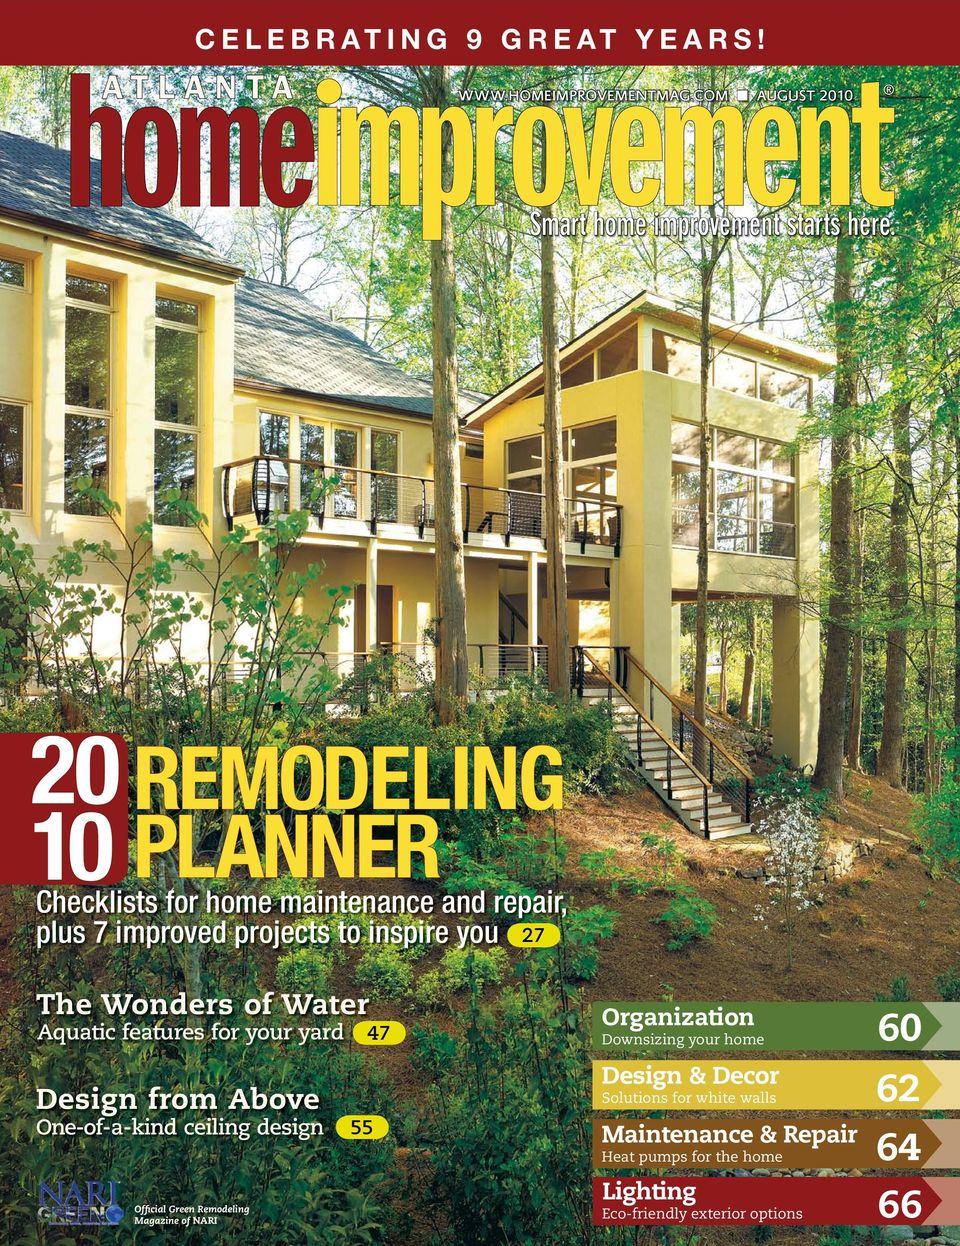 Aquatic features for your yard 47 Design from Above One-of-a-kind ceiling design Official Green Remodeling Magazine of NARI 55